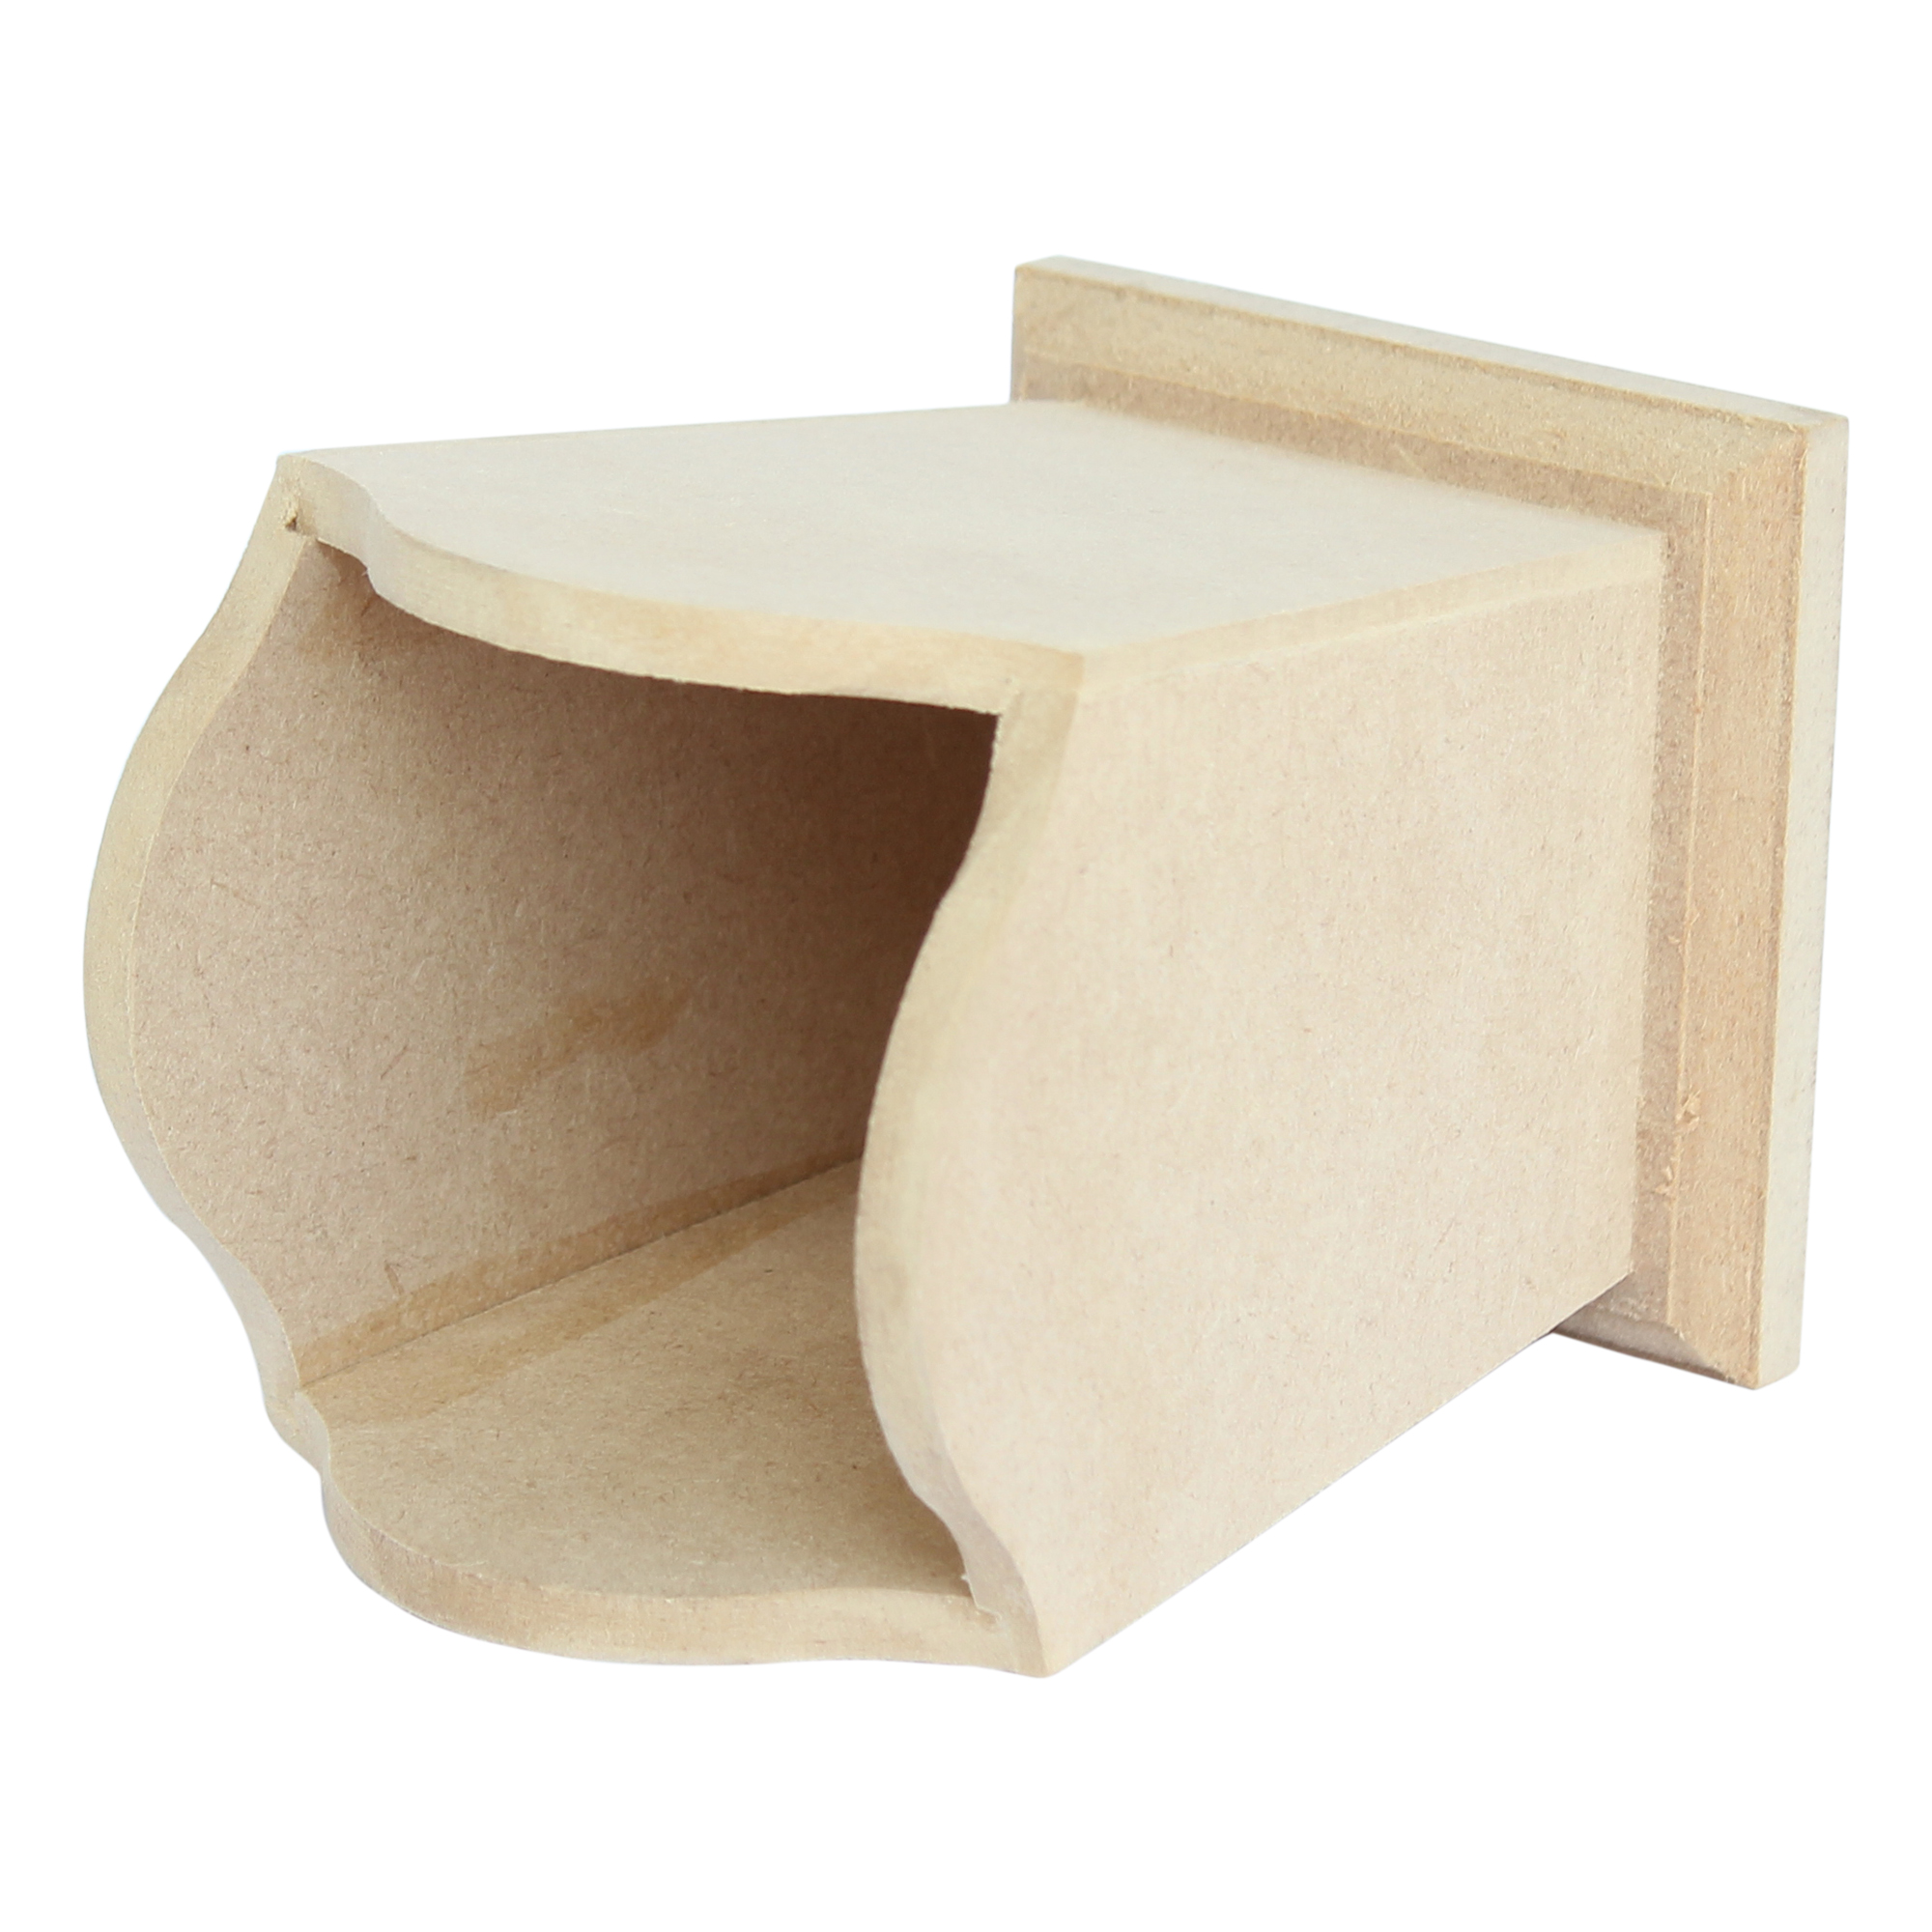 plain mdf wooden desk tidy for decoupage and craft